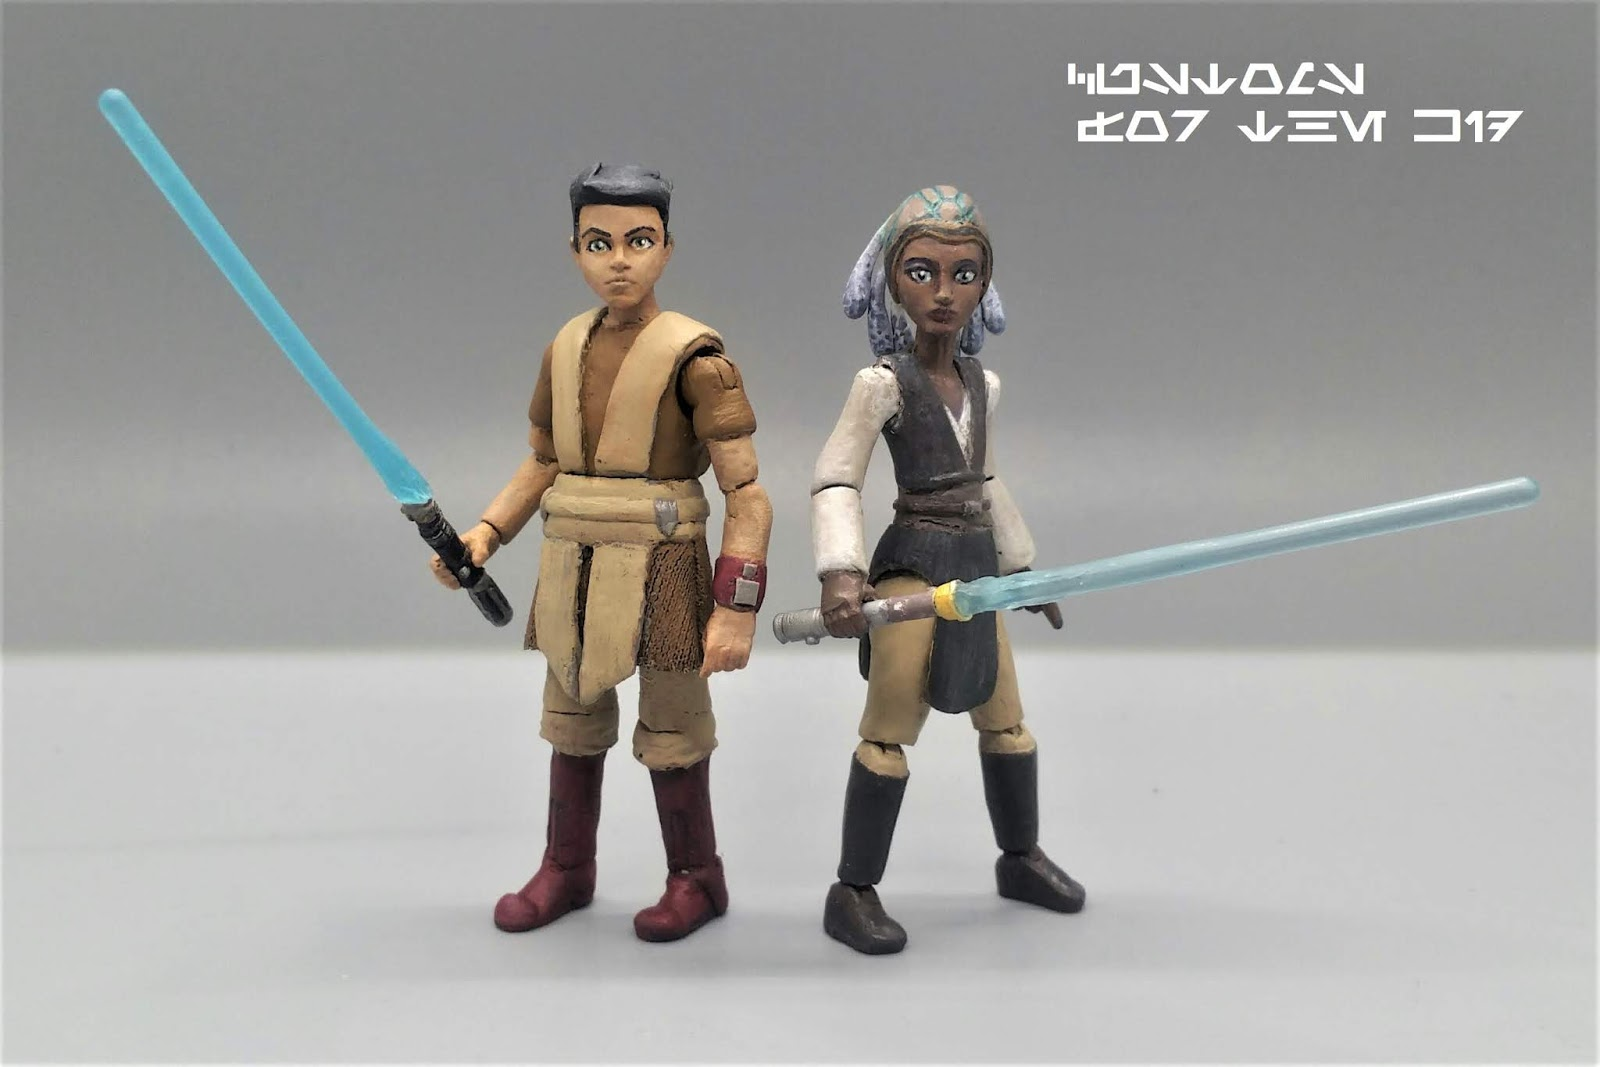 Star Wars Customs For The Kid Jedi Younglings Created By Customs For The Kid Part One Check out this fantastic star wars infographic that focuses. star wars customs for the kid jedi